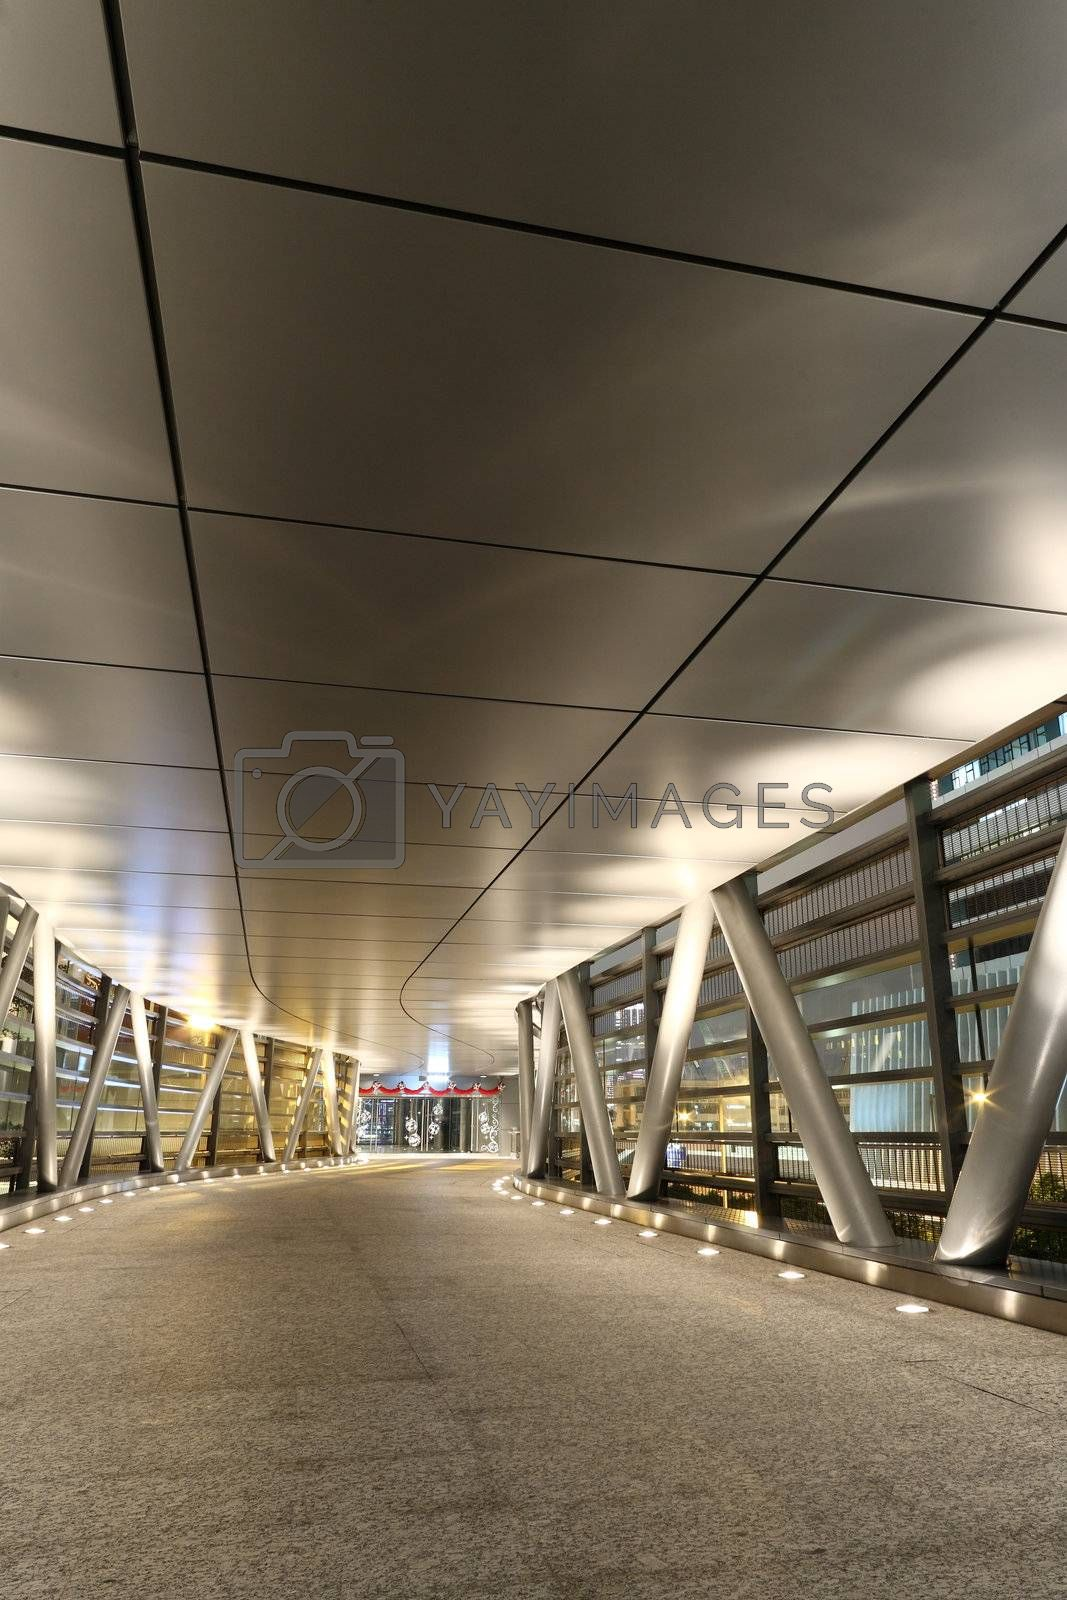 Royalty free image of modern flyover by leungchopan